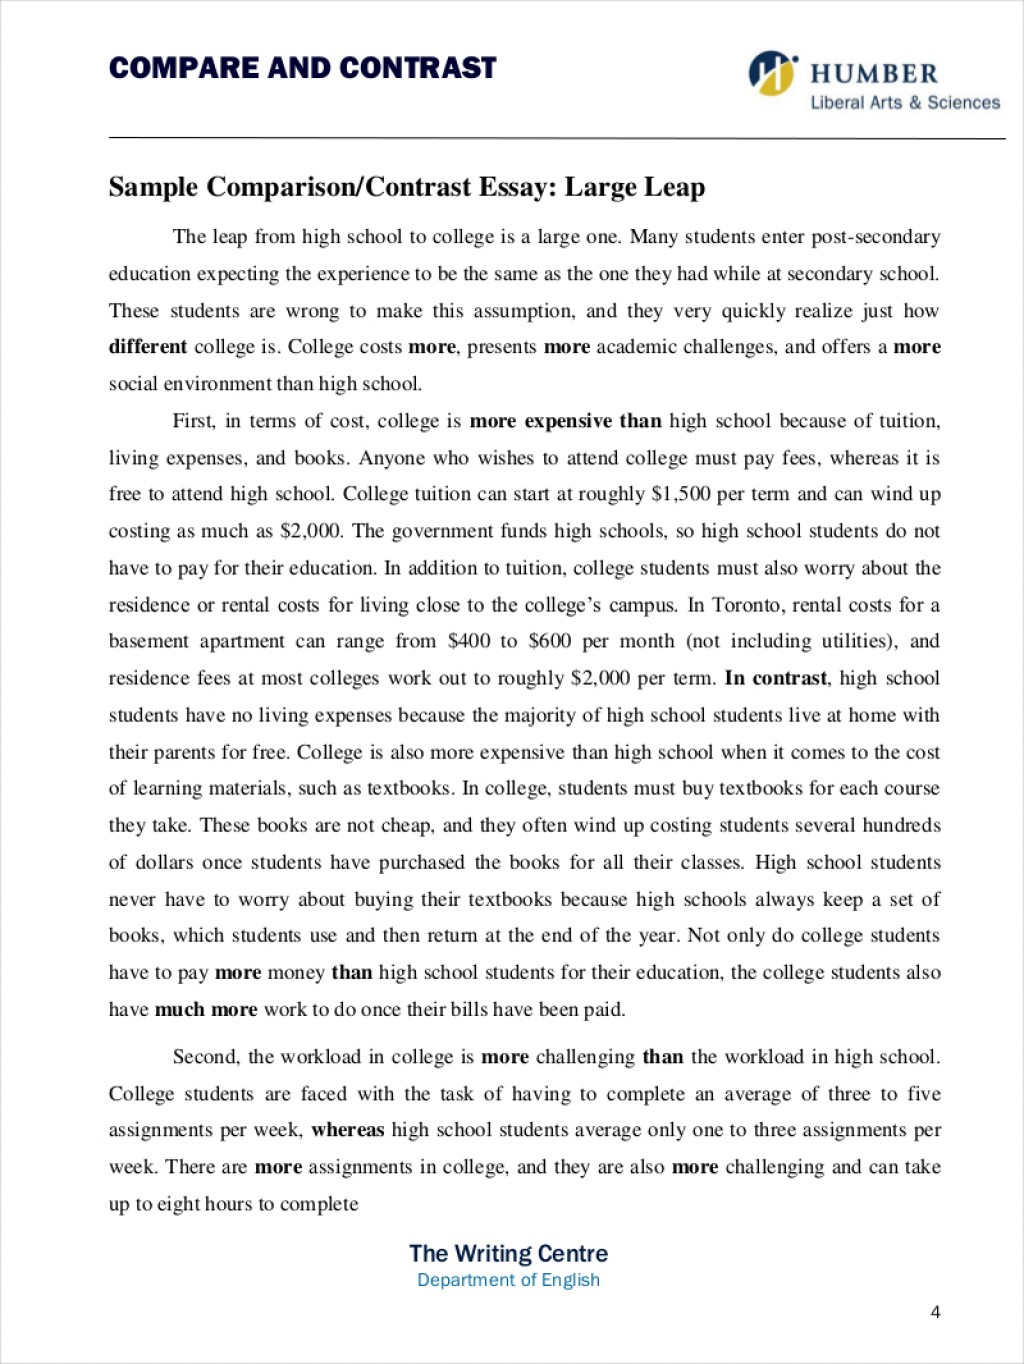 014 How To Write Compare And Contrast Essay Example Comparative Samples Free Pdf Format Download Throughout Examples Comparison Thesis Coles Thecolossus Co Within Ex Outstanding A Block Conclusion Paragraph For Large